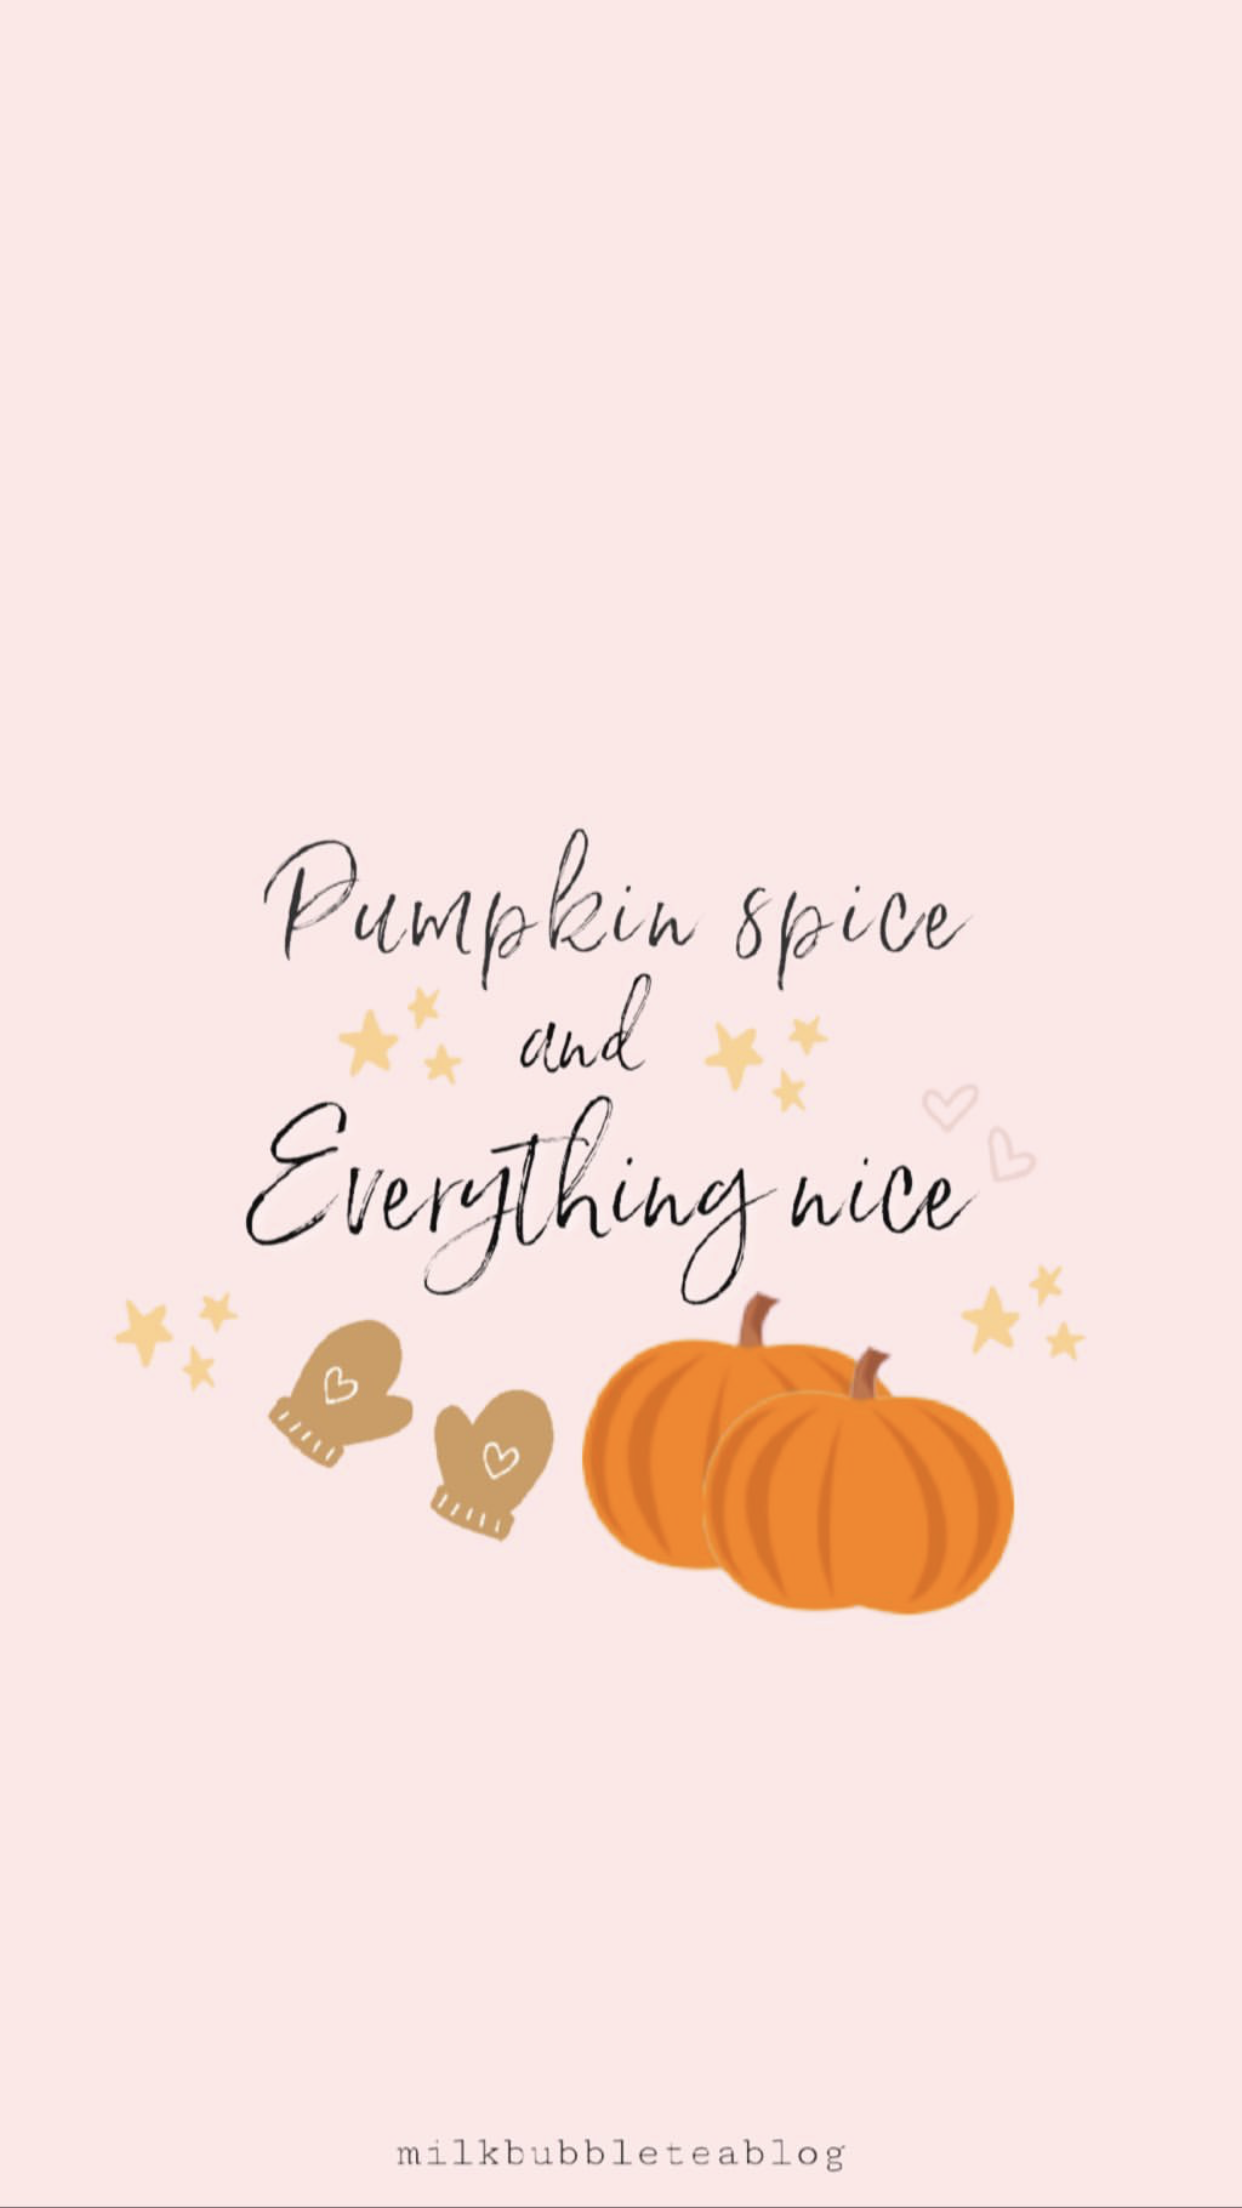 Pin By Richmondmom On Wallpapers Backgrounds Cute Fall Wallpaper Fall Wallpaper Iphone Wallpaper Fall